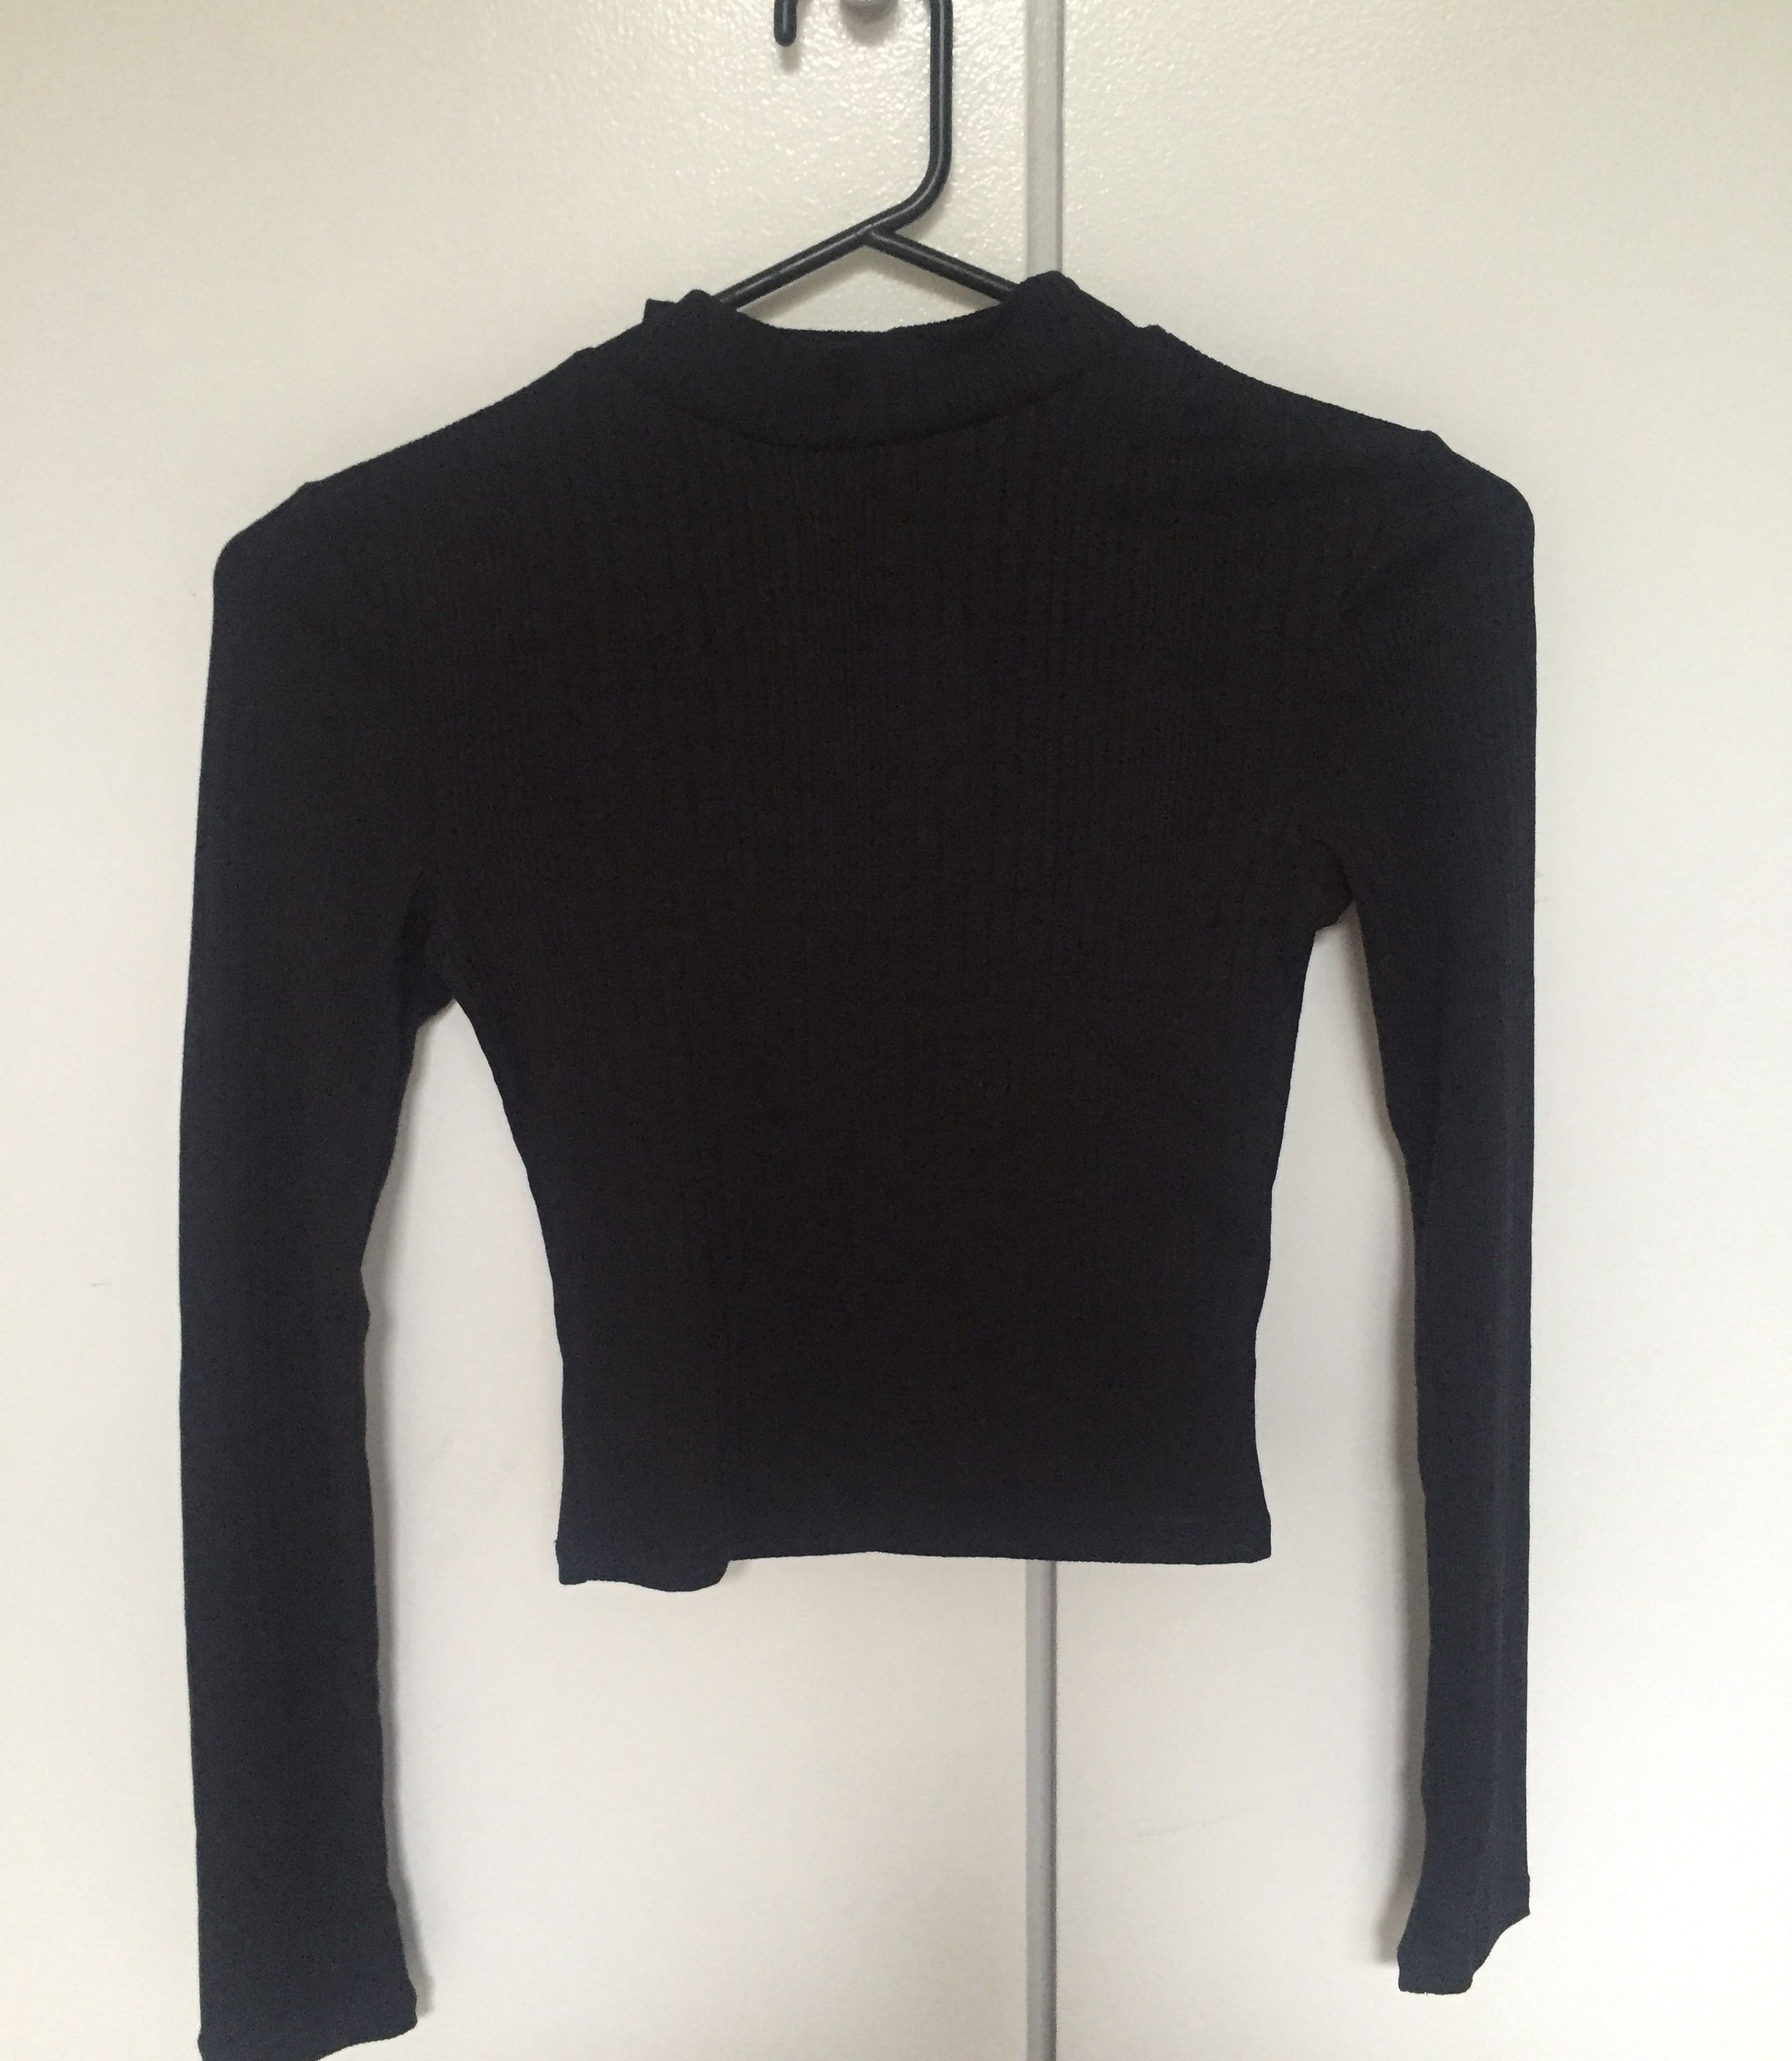 9d28daf24d27ad Black tight size 6 brand new never worn long sleeve top, Women's Fashion,  Clothes on Carousell